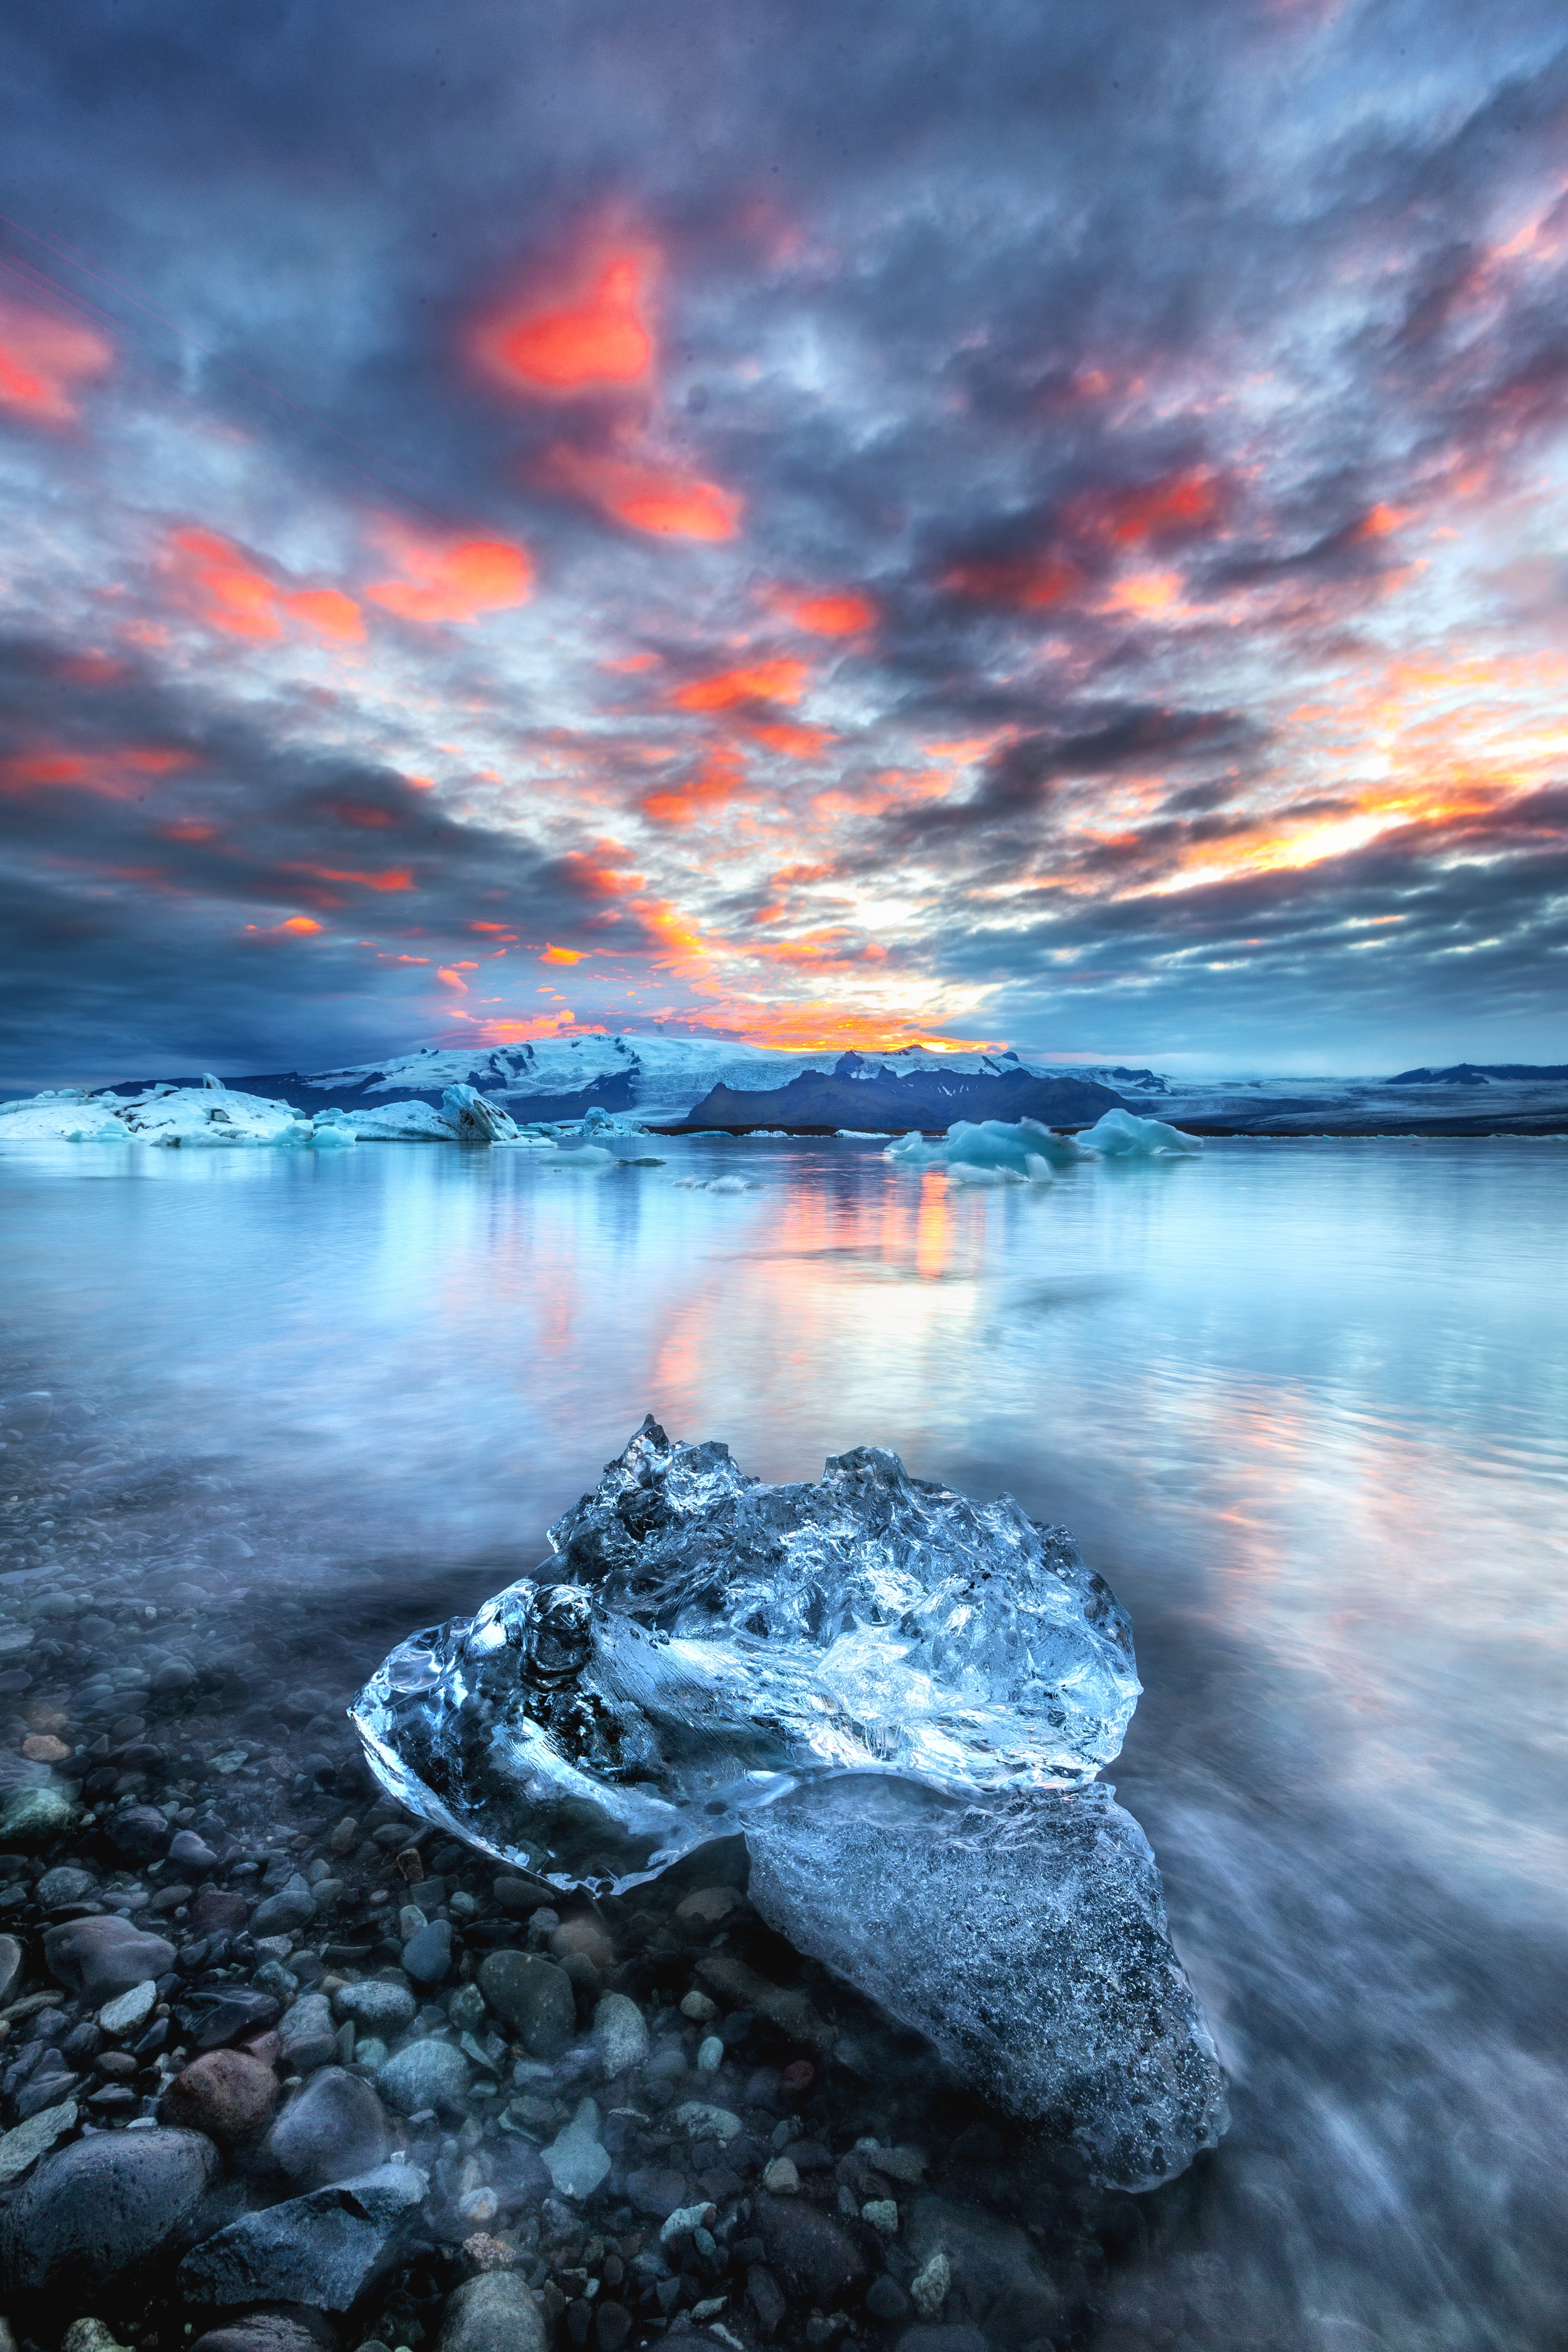 151478 download wallpaper Nature, Ice, Lake, Iceberg, Ice Floe screensavers and pictures for free